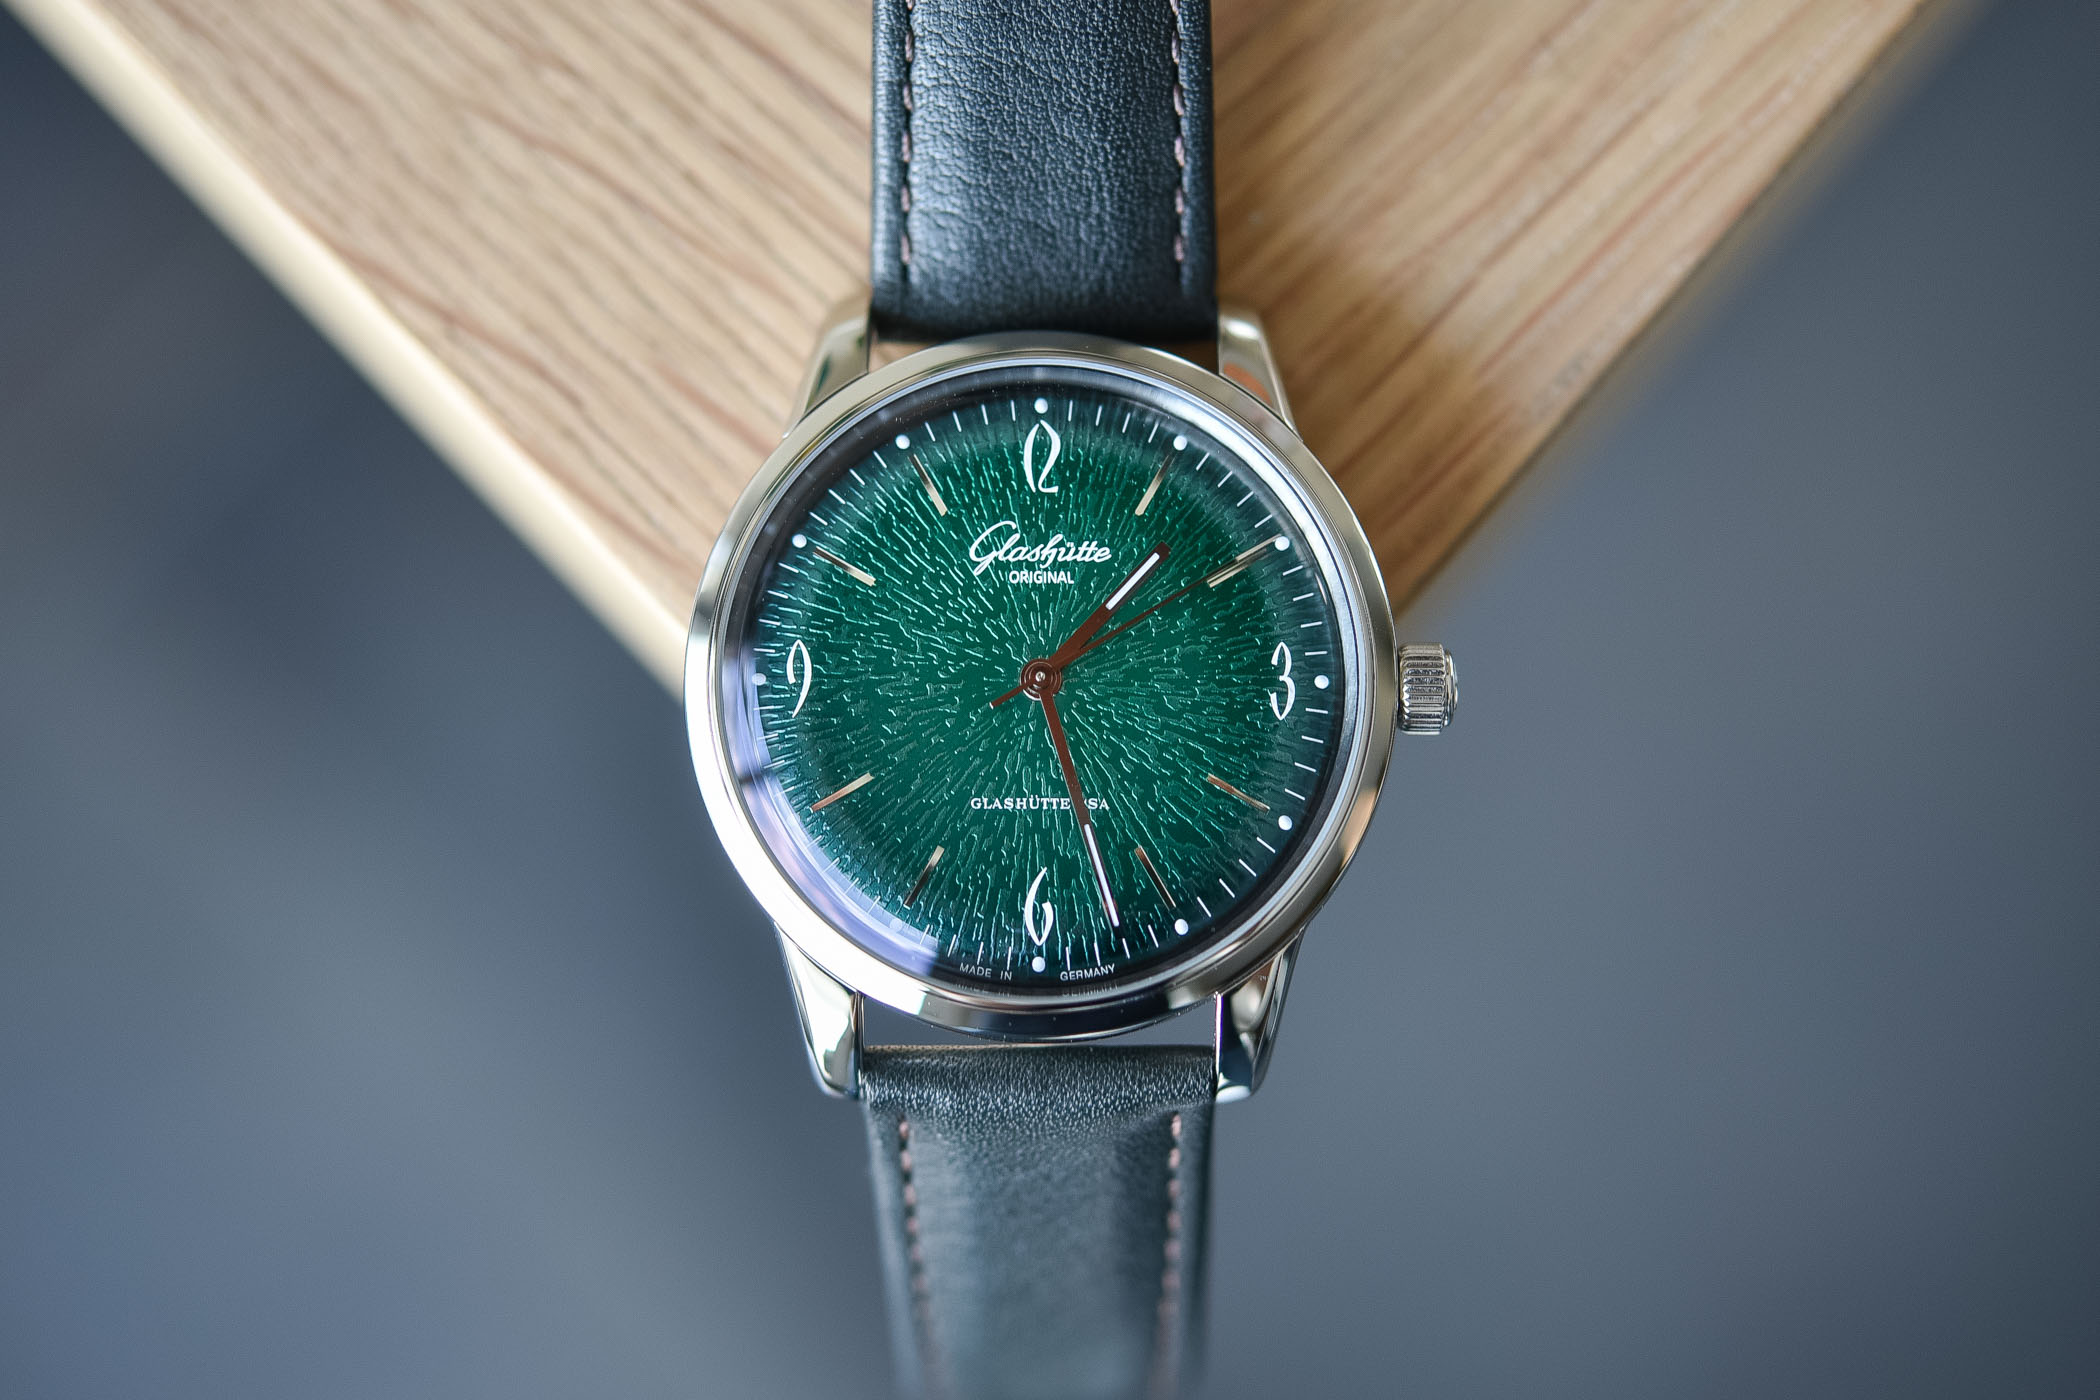 Glashutte Original Sixties Annual Edition 2018 Green Dial 39mm - 1-39-52-03-02-04